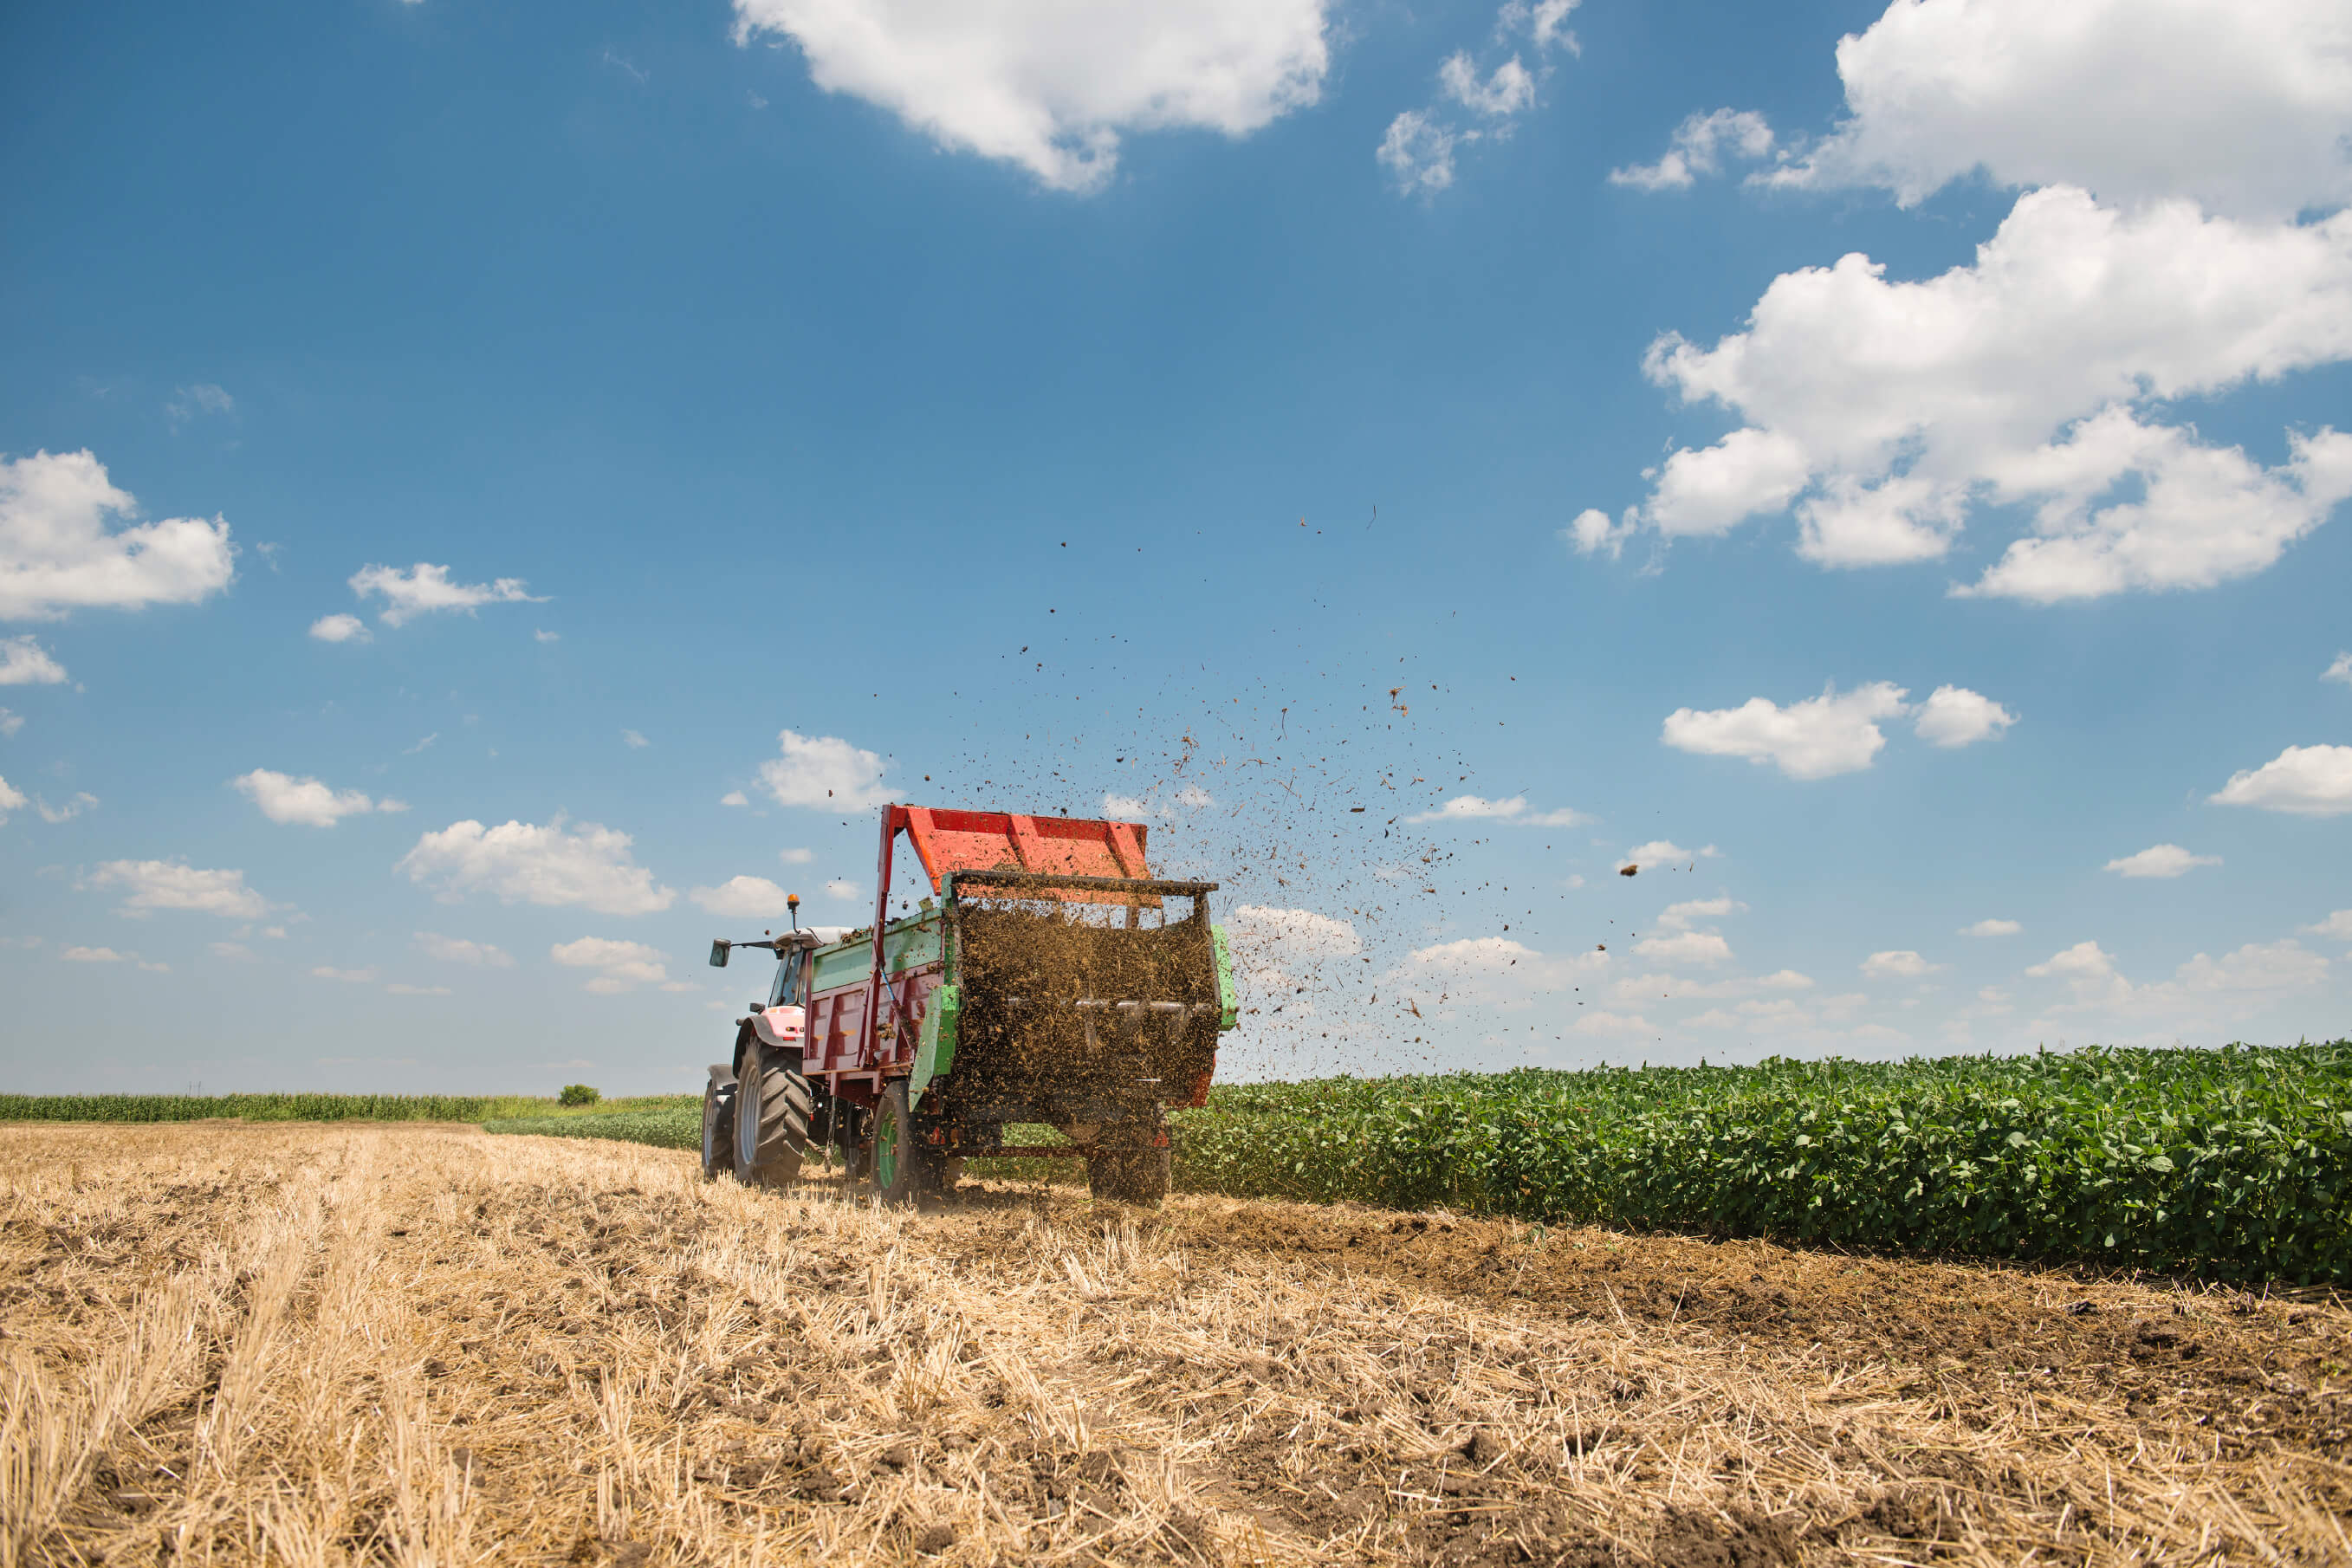 Image: Manure spreader working in field of harvested wheat